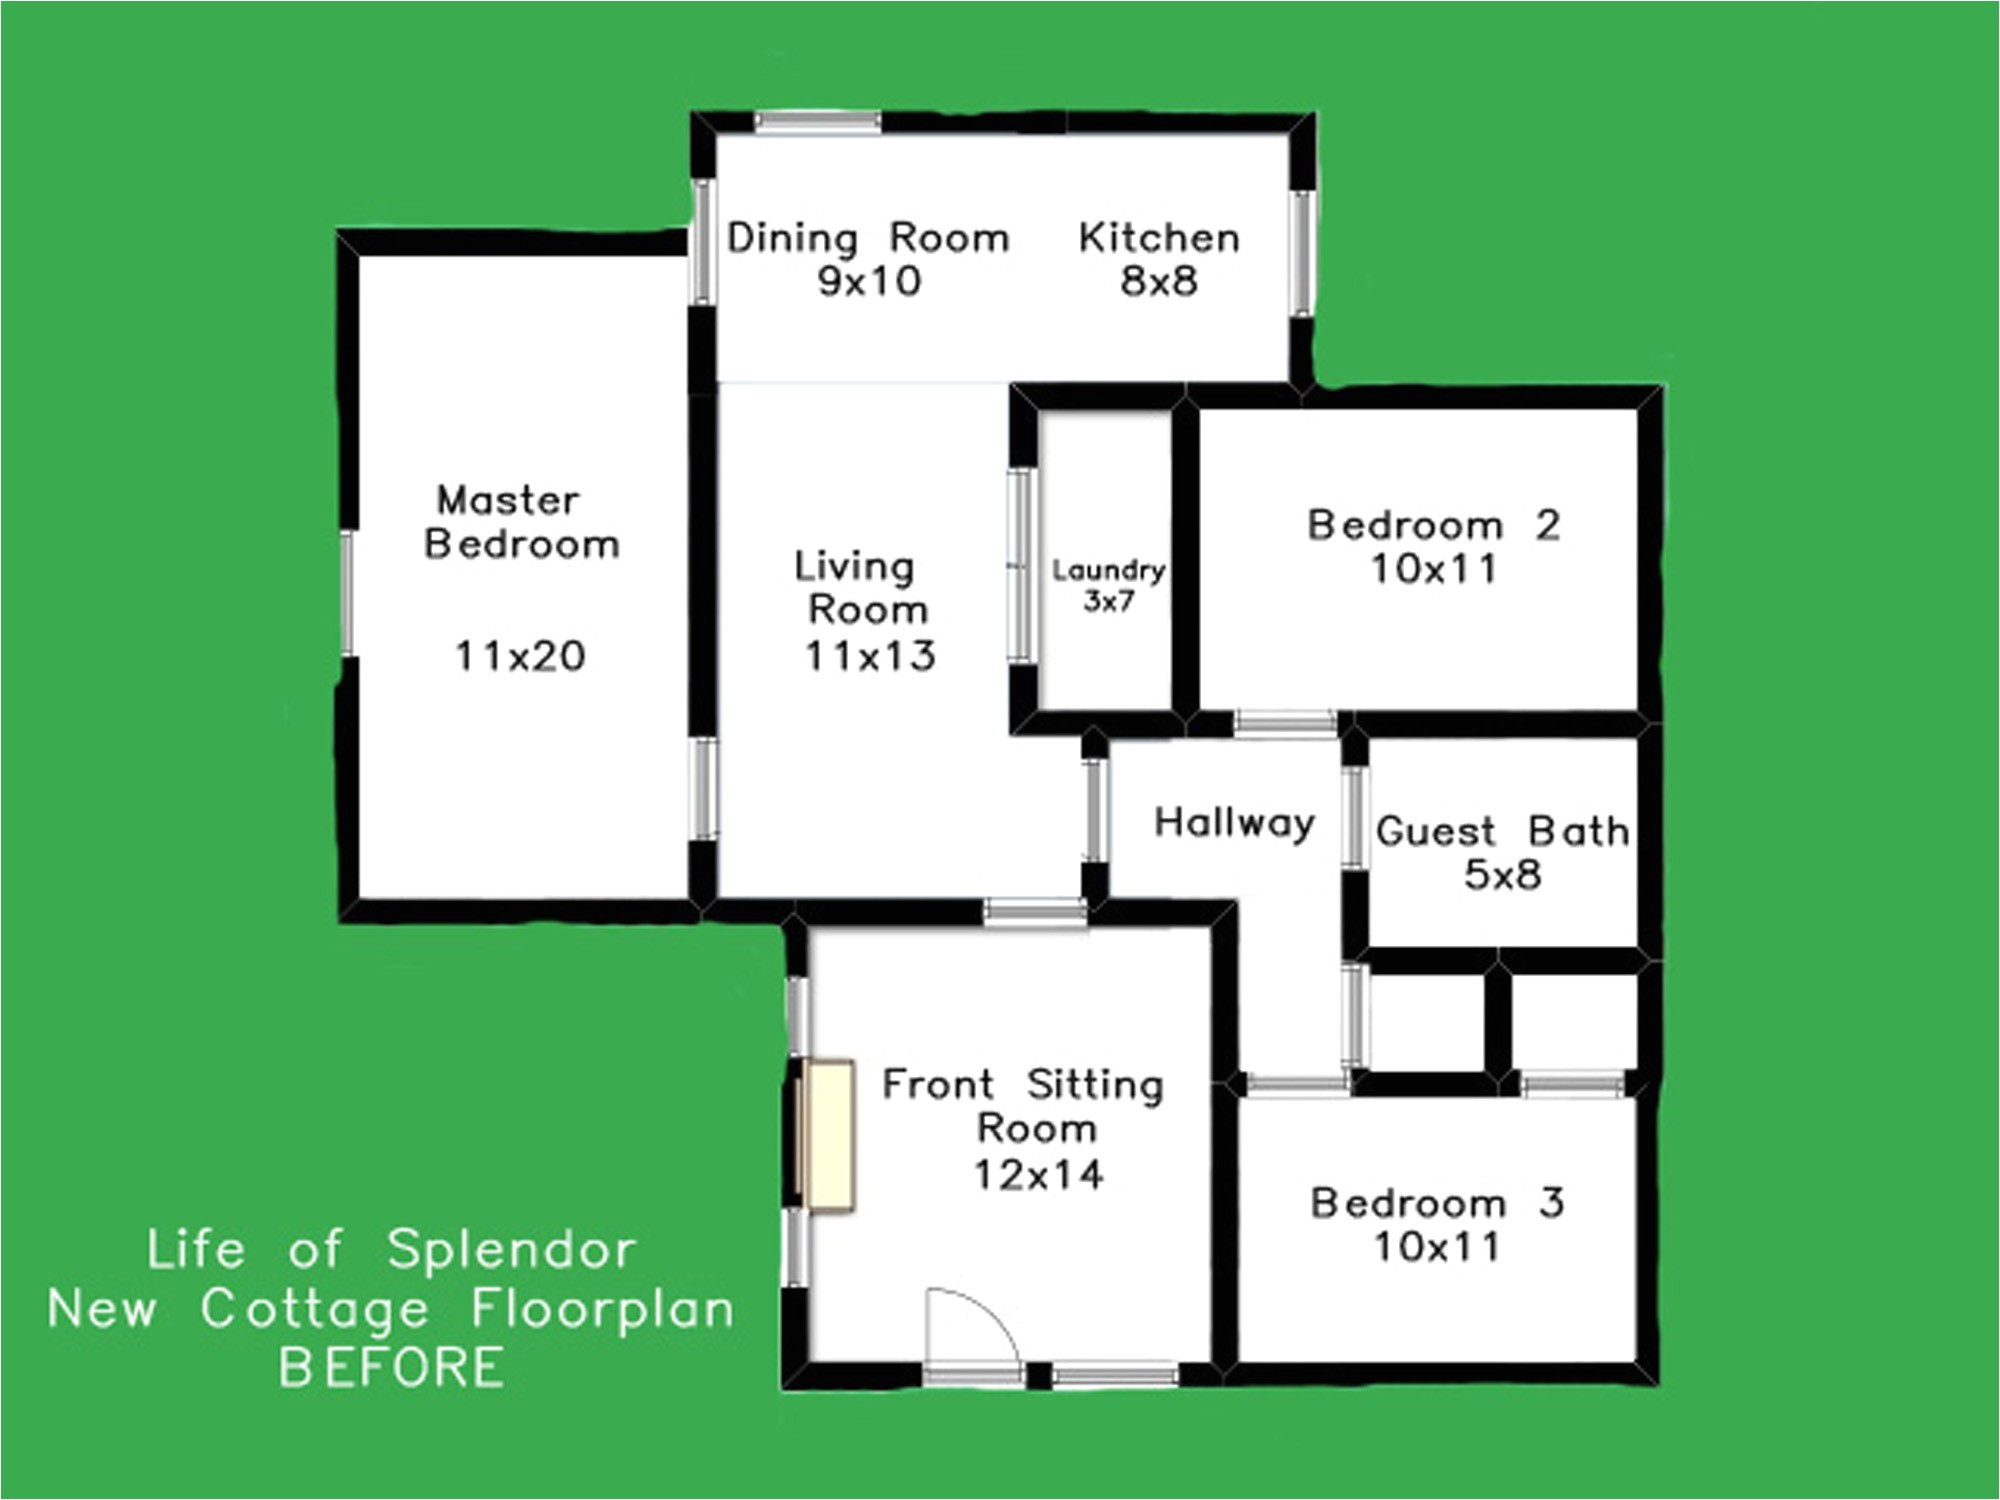 house plans floorplanner downloadable menu refills allotment calanders yearly lesson table blank organizers project work month